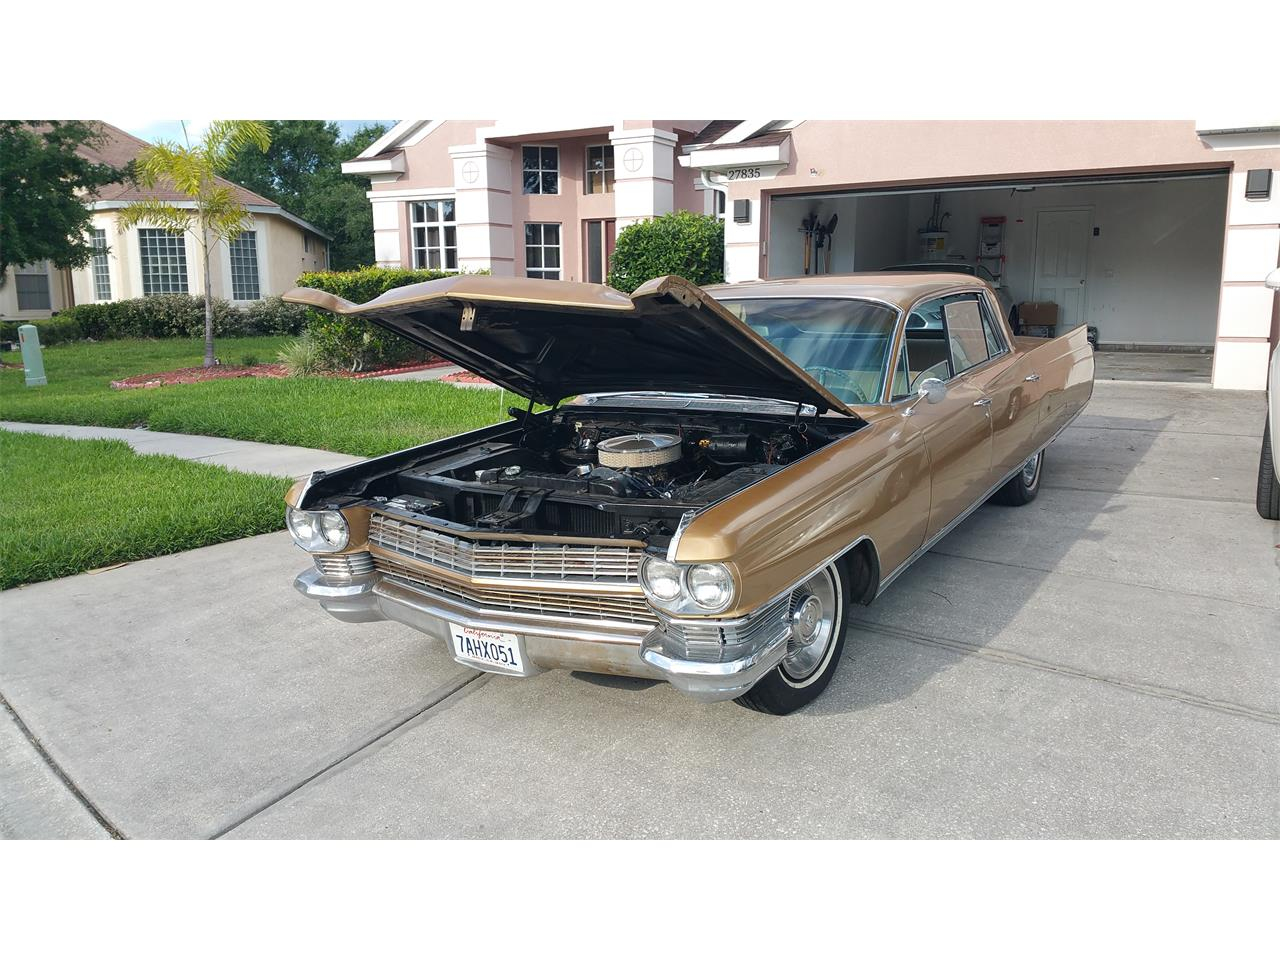 Large Picture of Classic '64 Cadillac Fleetwood 60 Special located in North Carolina - $7,900.00 Offered by a Private Seller - IDPD